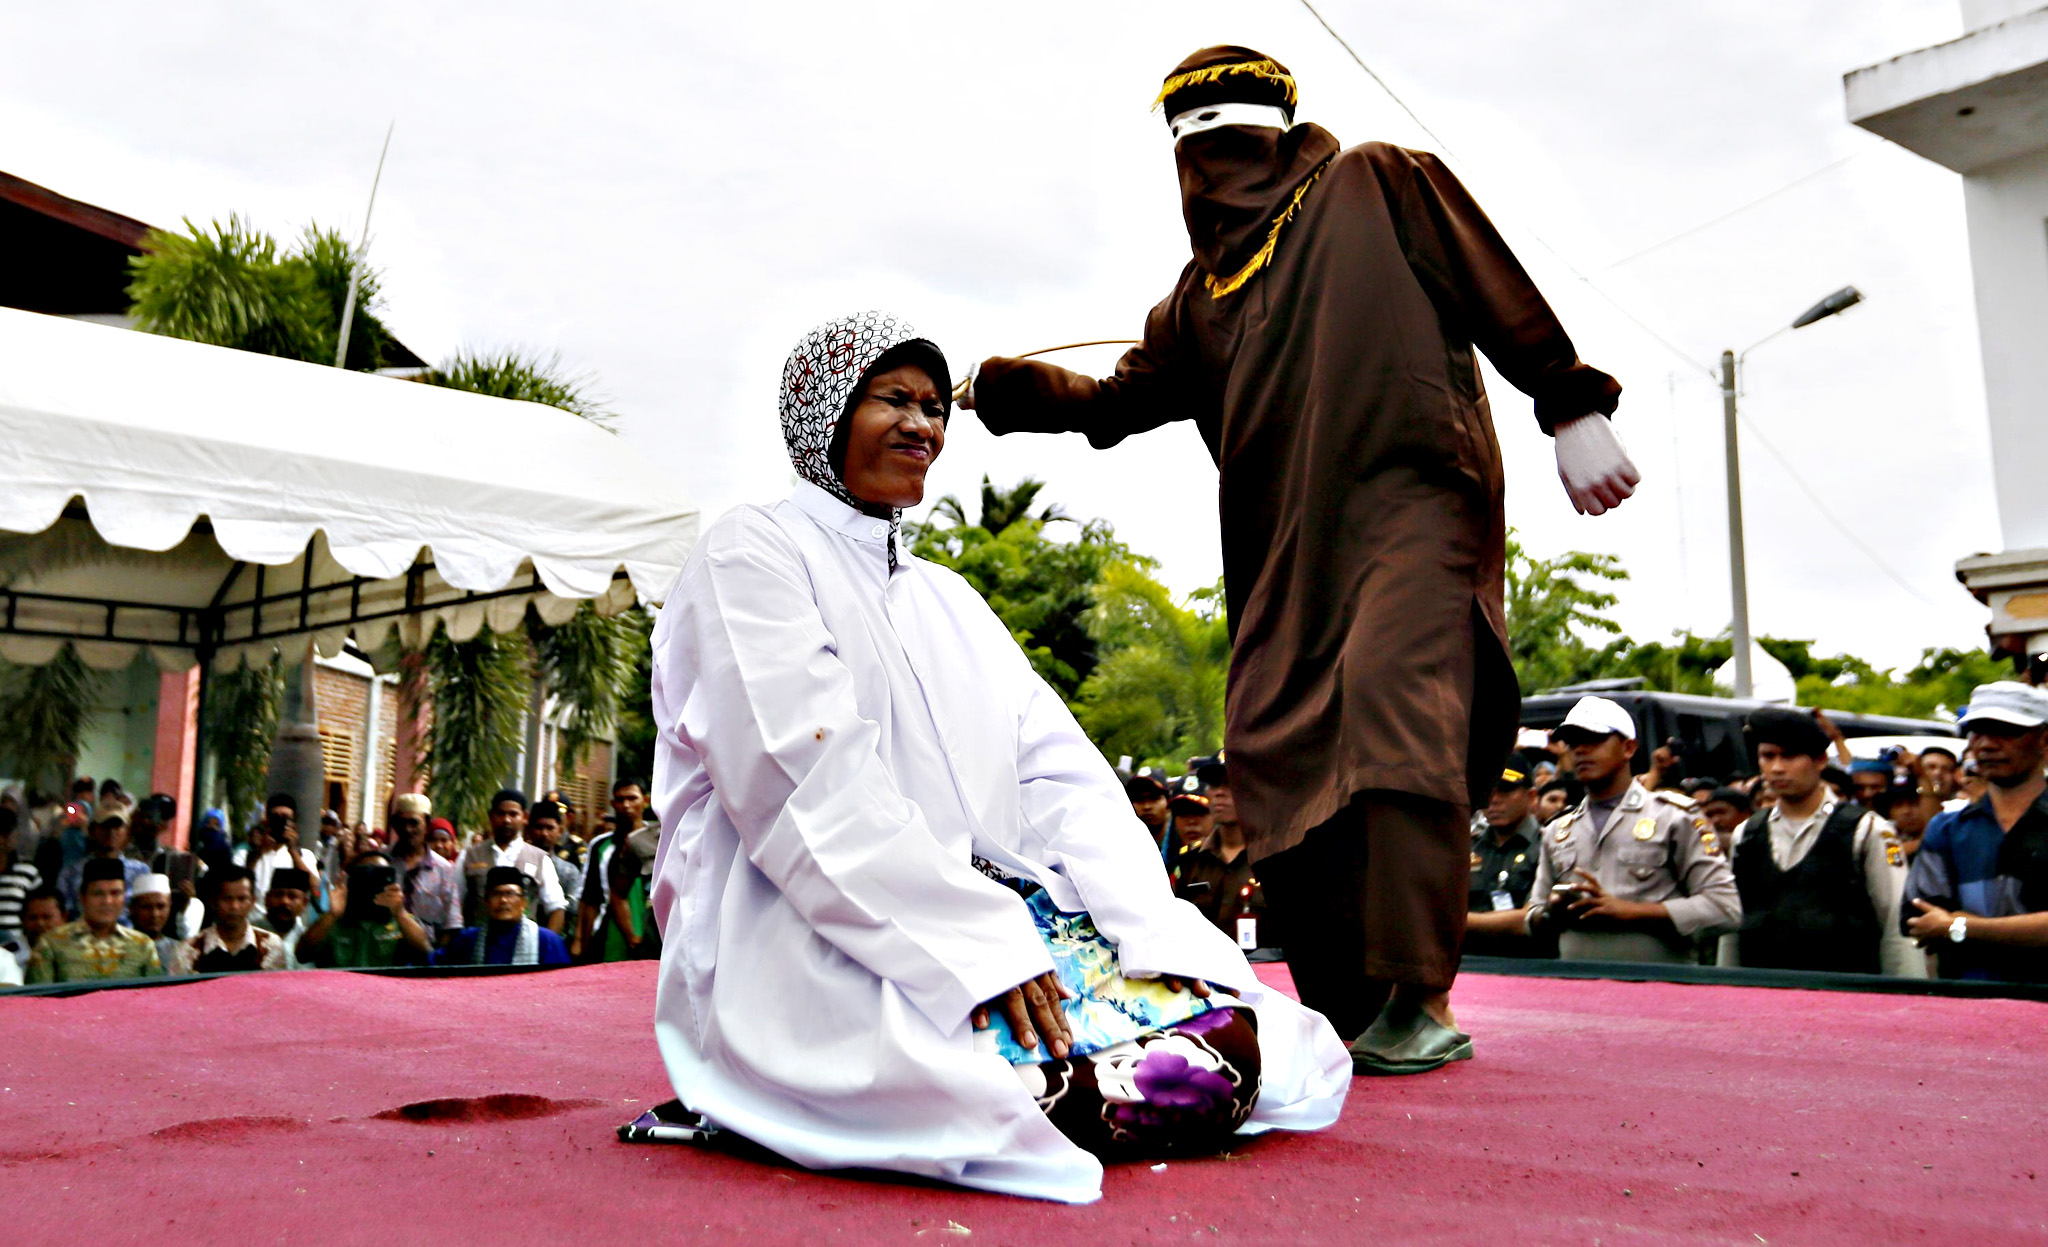 An Acehnese woman reacts as she is publicly whipped with a cane as punishment, in Banda Aceh, Aceh, Indonesia, Friday. Four women and three men were caned by Sharia police in Aceh for having sex affairs without being married